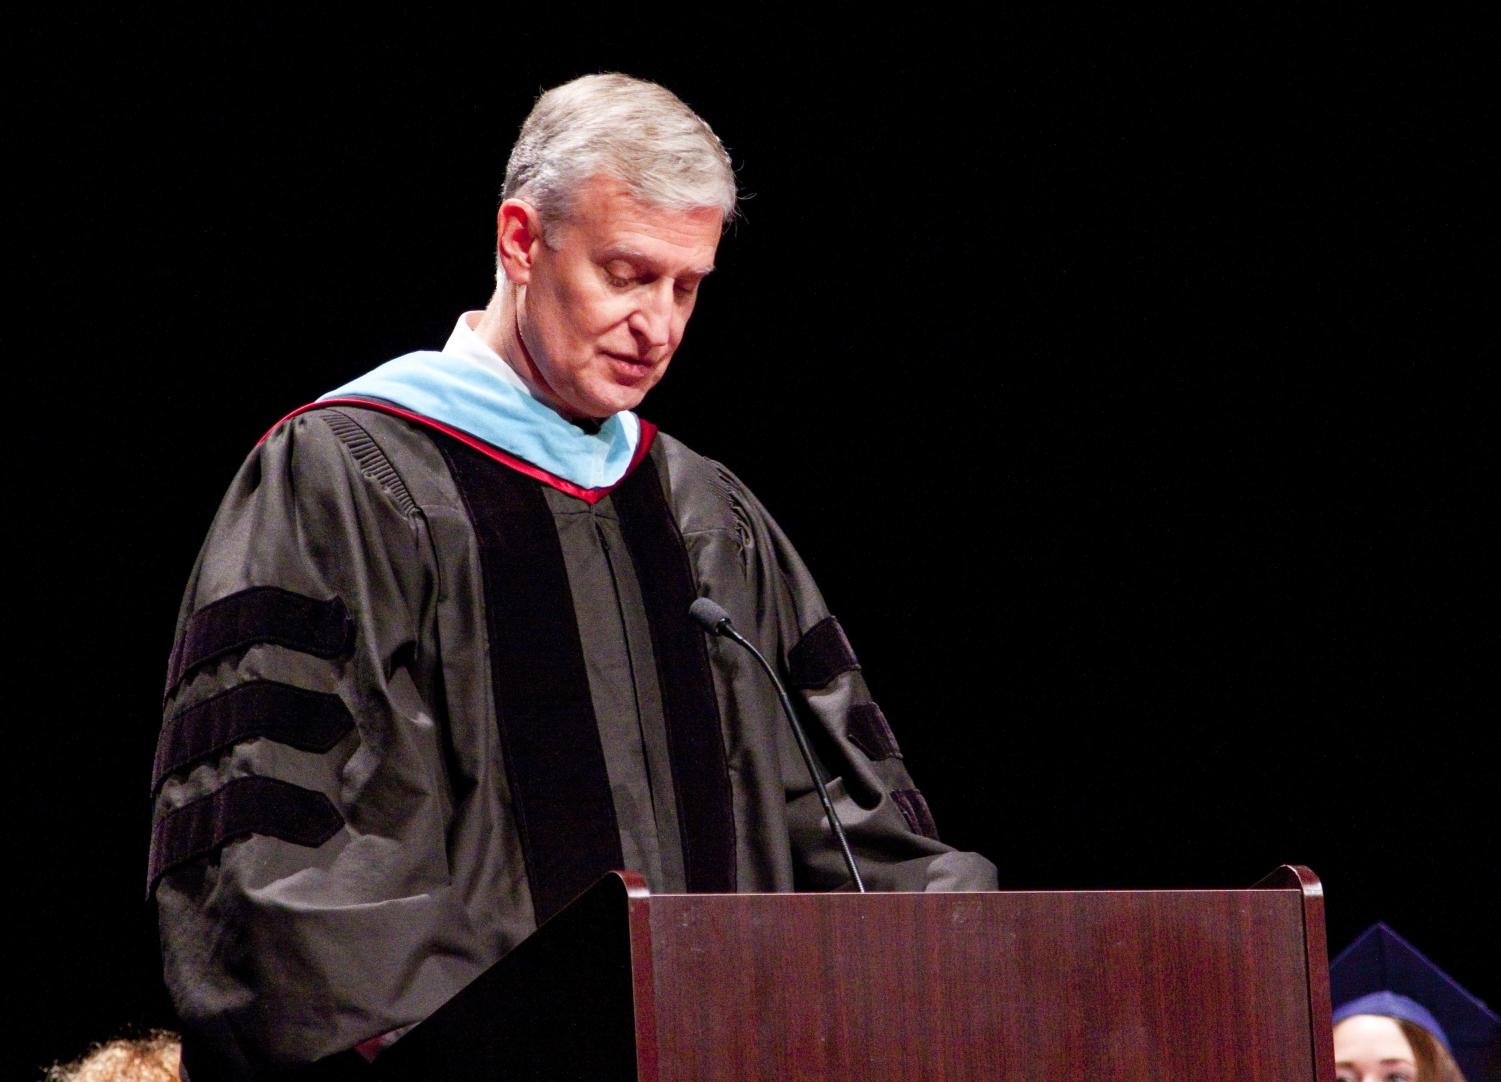 Sentimental Speech: Speaking at the 2018 graduation, Riggle reflects on his cherished memories of the graduating class. On this day, Riggle officially announced to faculty his plan to retire.